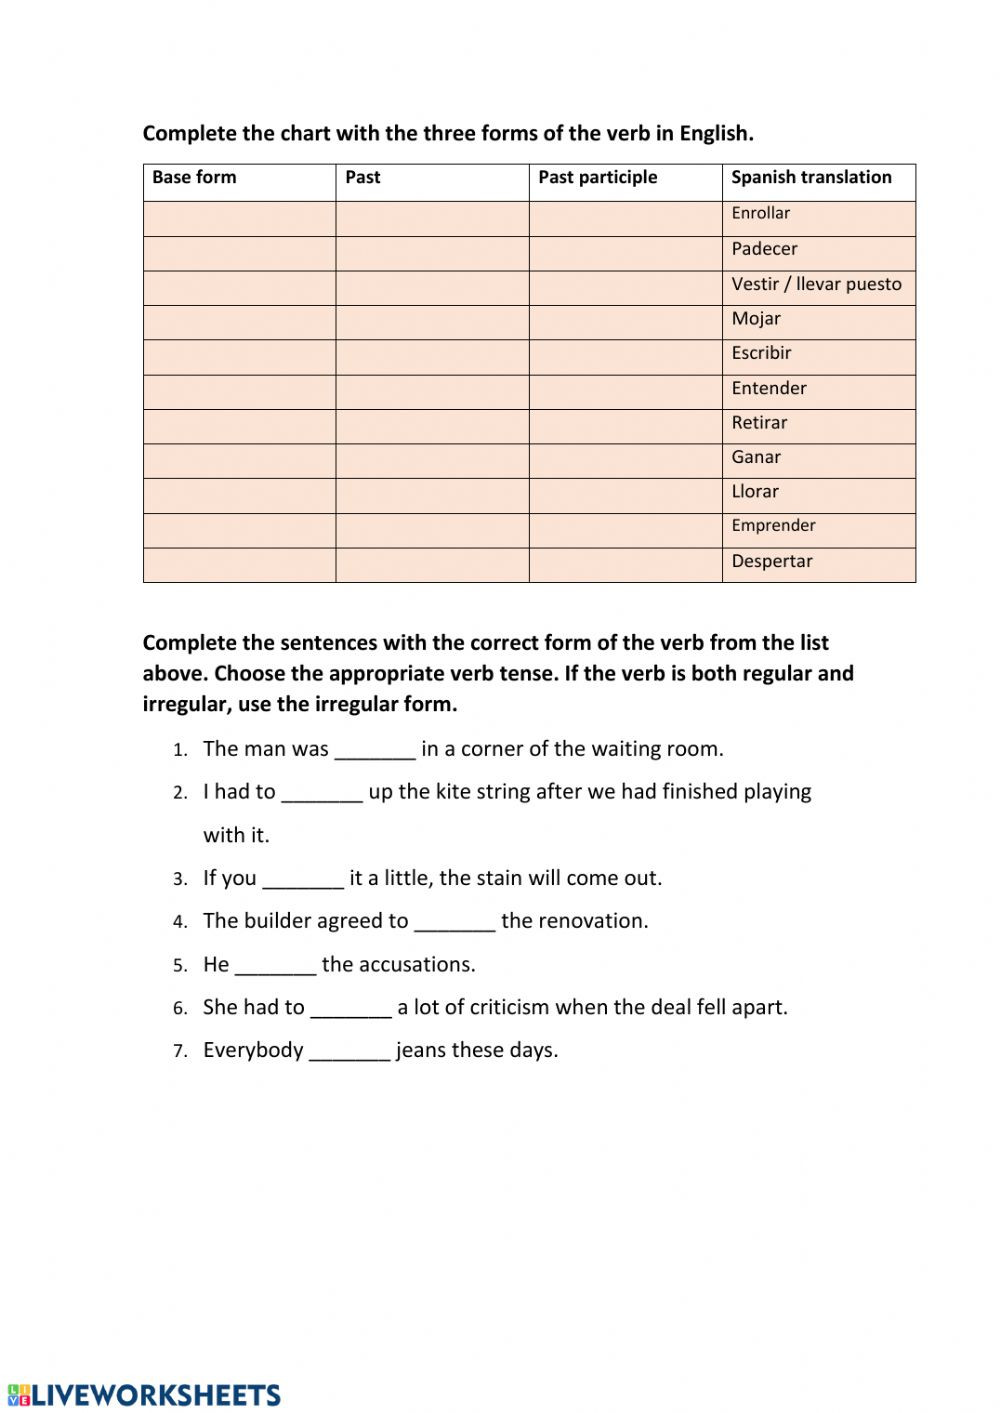 Verb Tense Worksheets High School Irregular Verbs 10 Irregular Verbs Worksheet